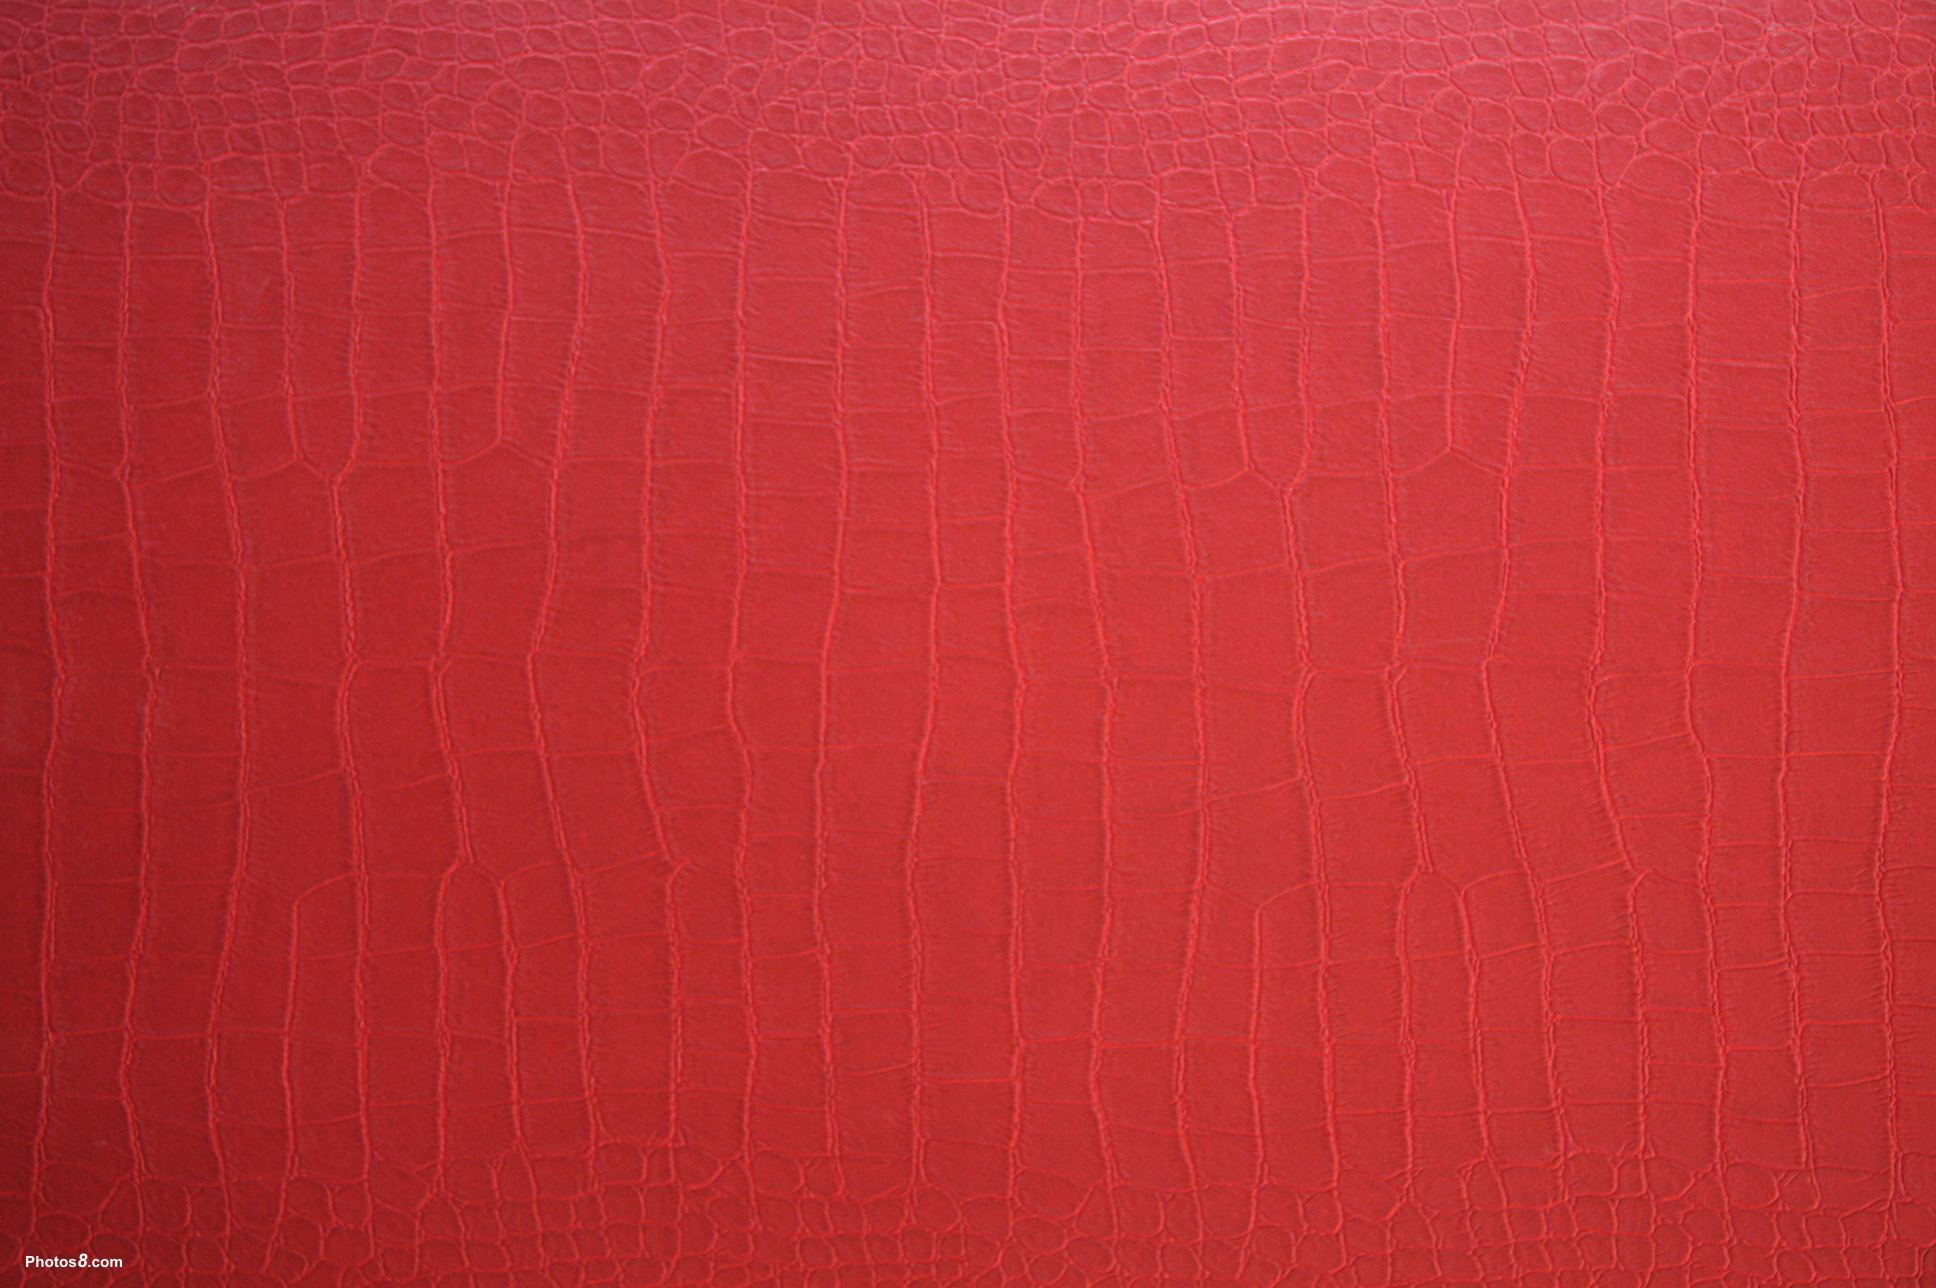 red leather texture, background, red leather background, leather background